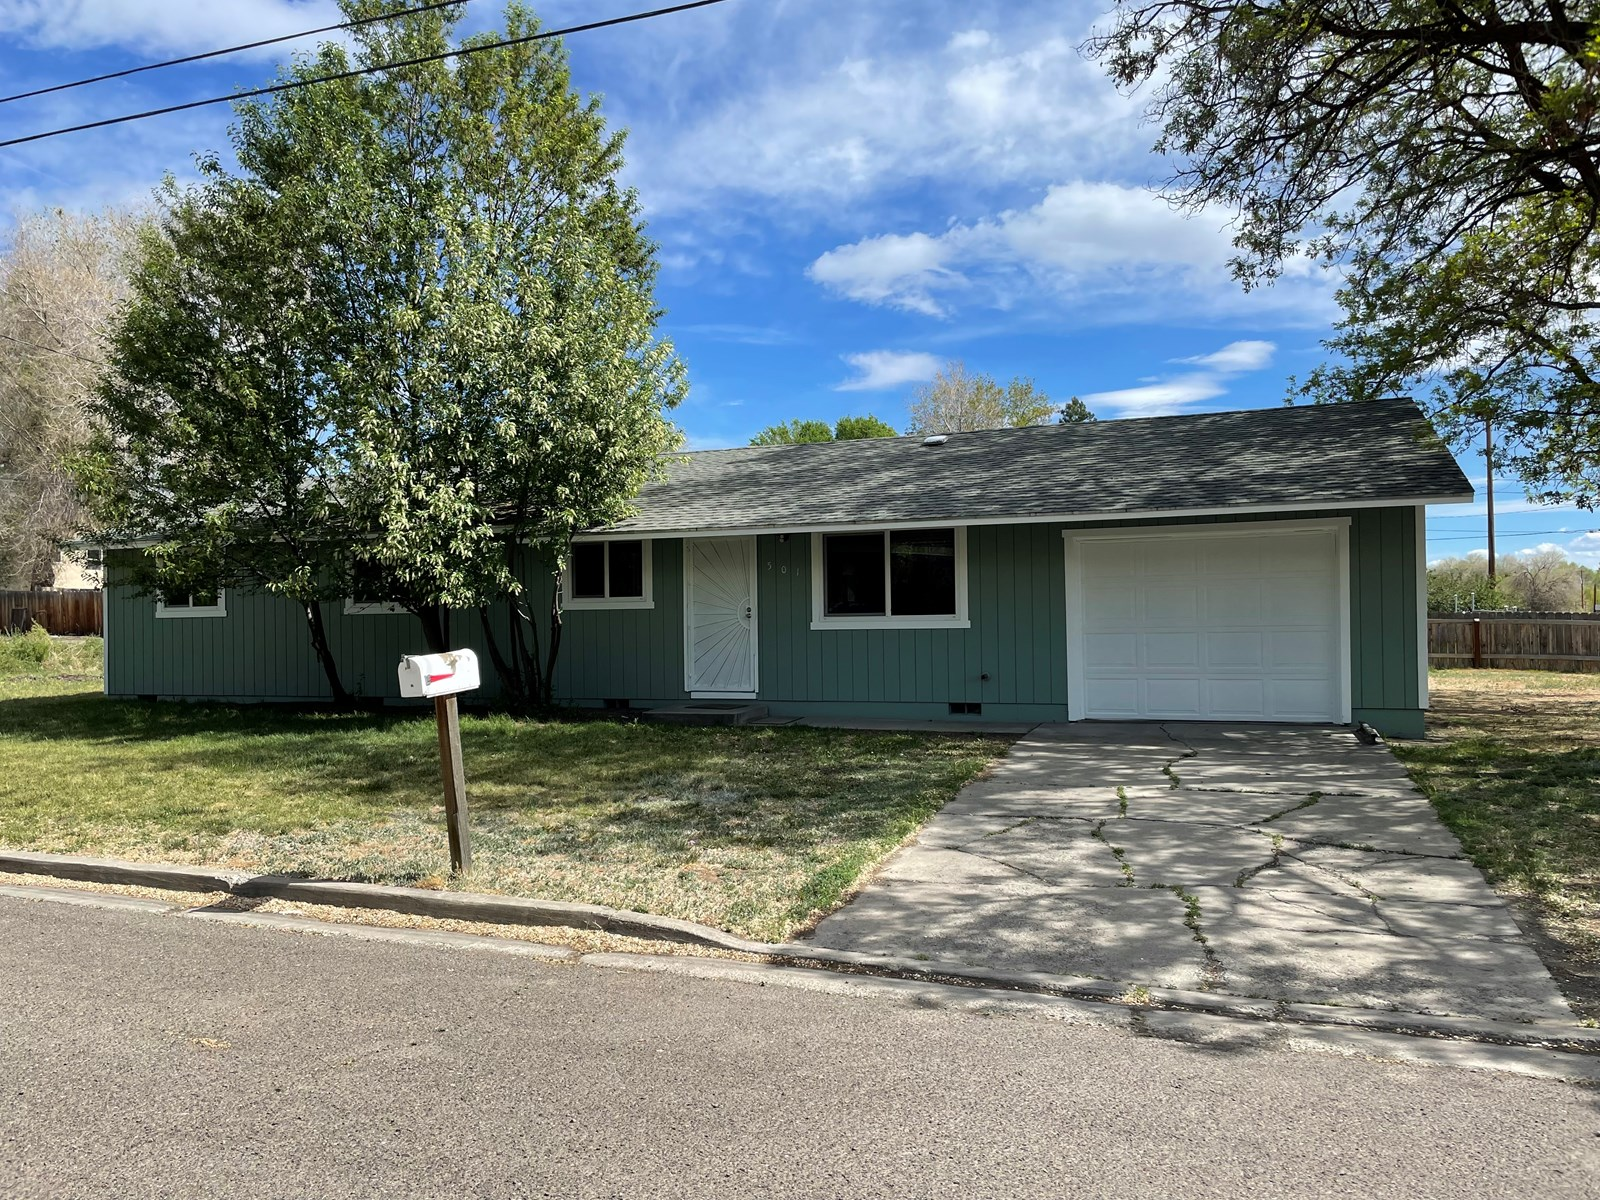 4 bed/2 bath 1248 Sq. Ft home in town of Alturas, Ca.